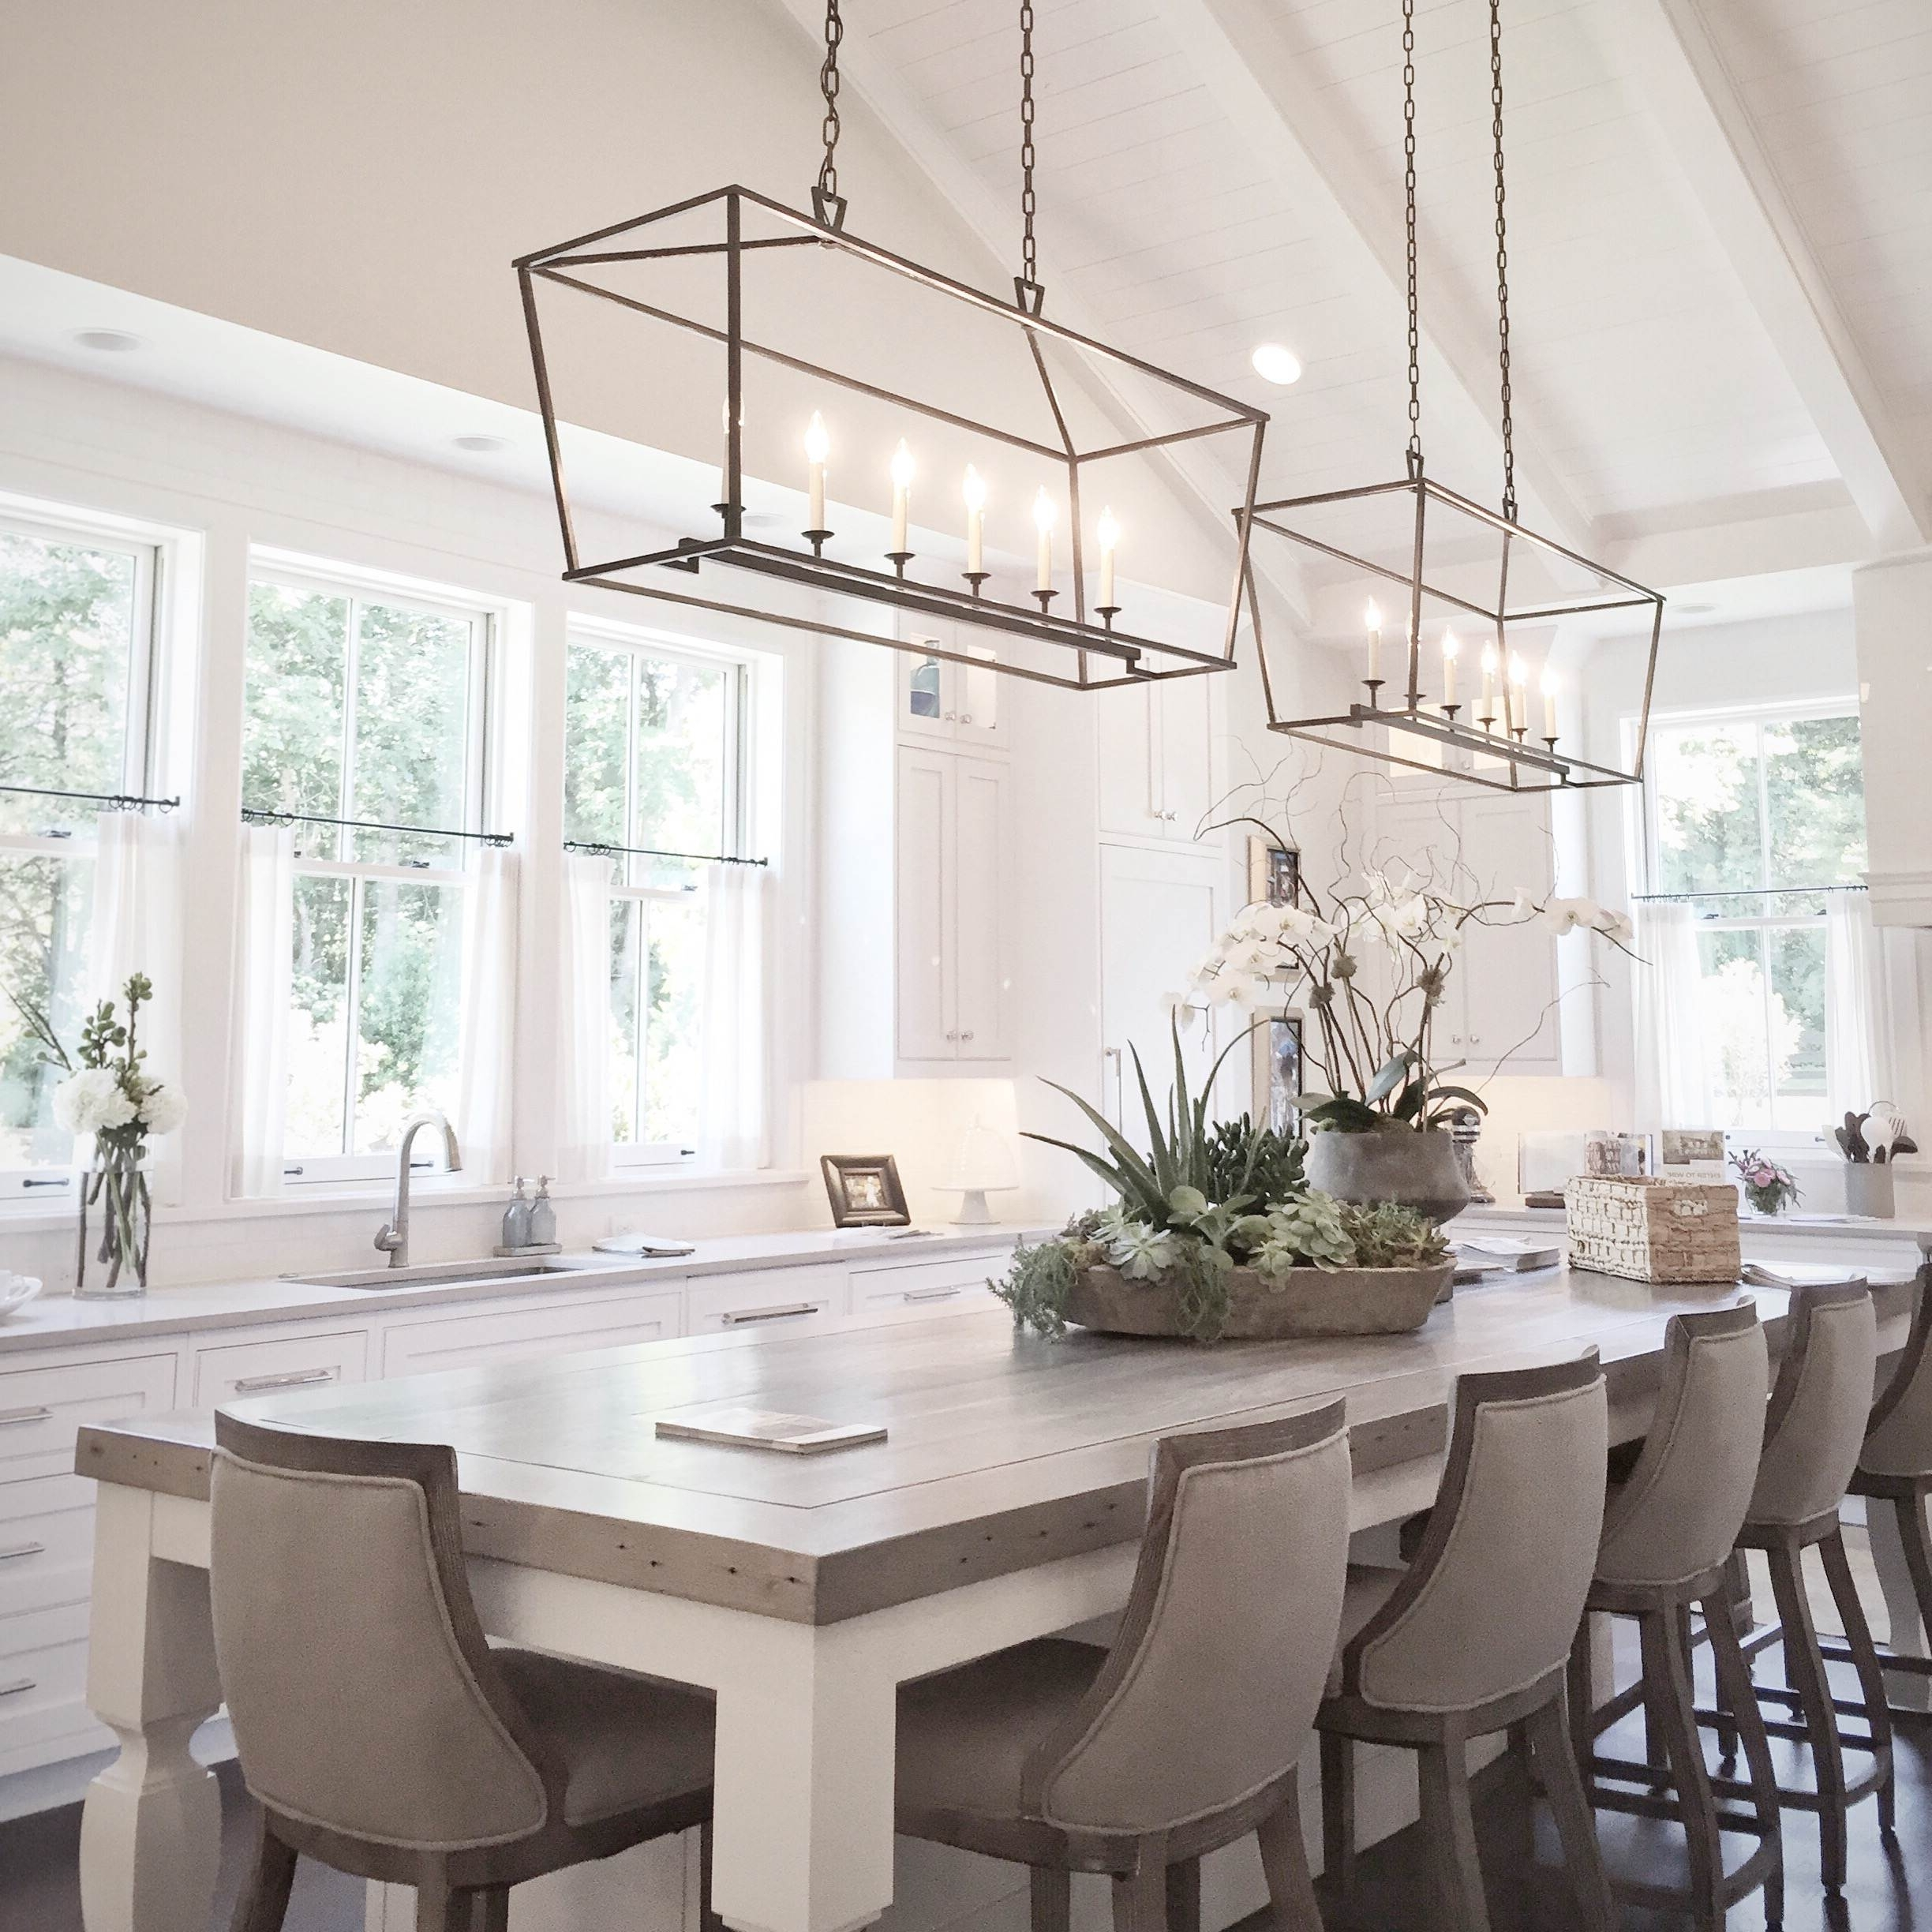 72 Examples Suggestion Kitchen Island Pendant Lighting Ideas Ceiling Regarding Well Known Outdoor Hanging Lights With Battery (View 3 of 20)